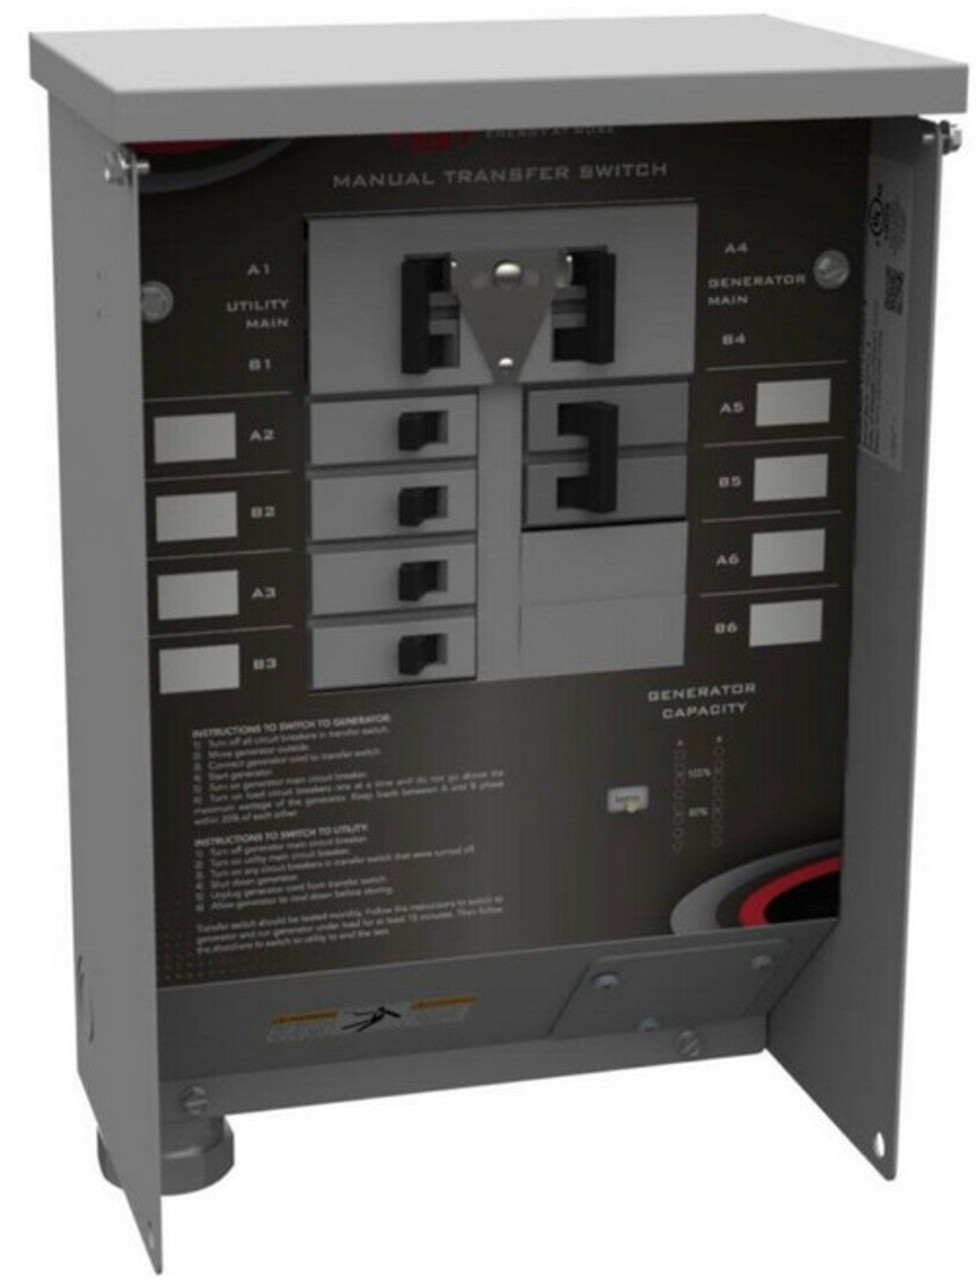 MMTS301SYSL Manual Transfer Switch without Cord